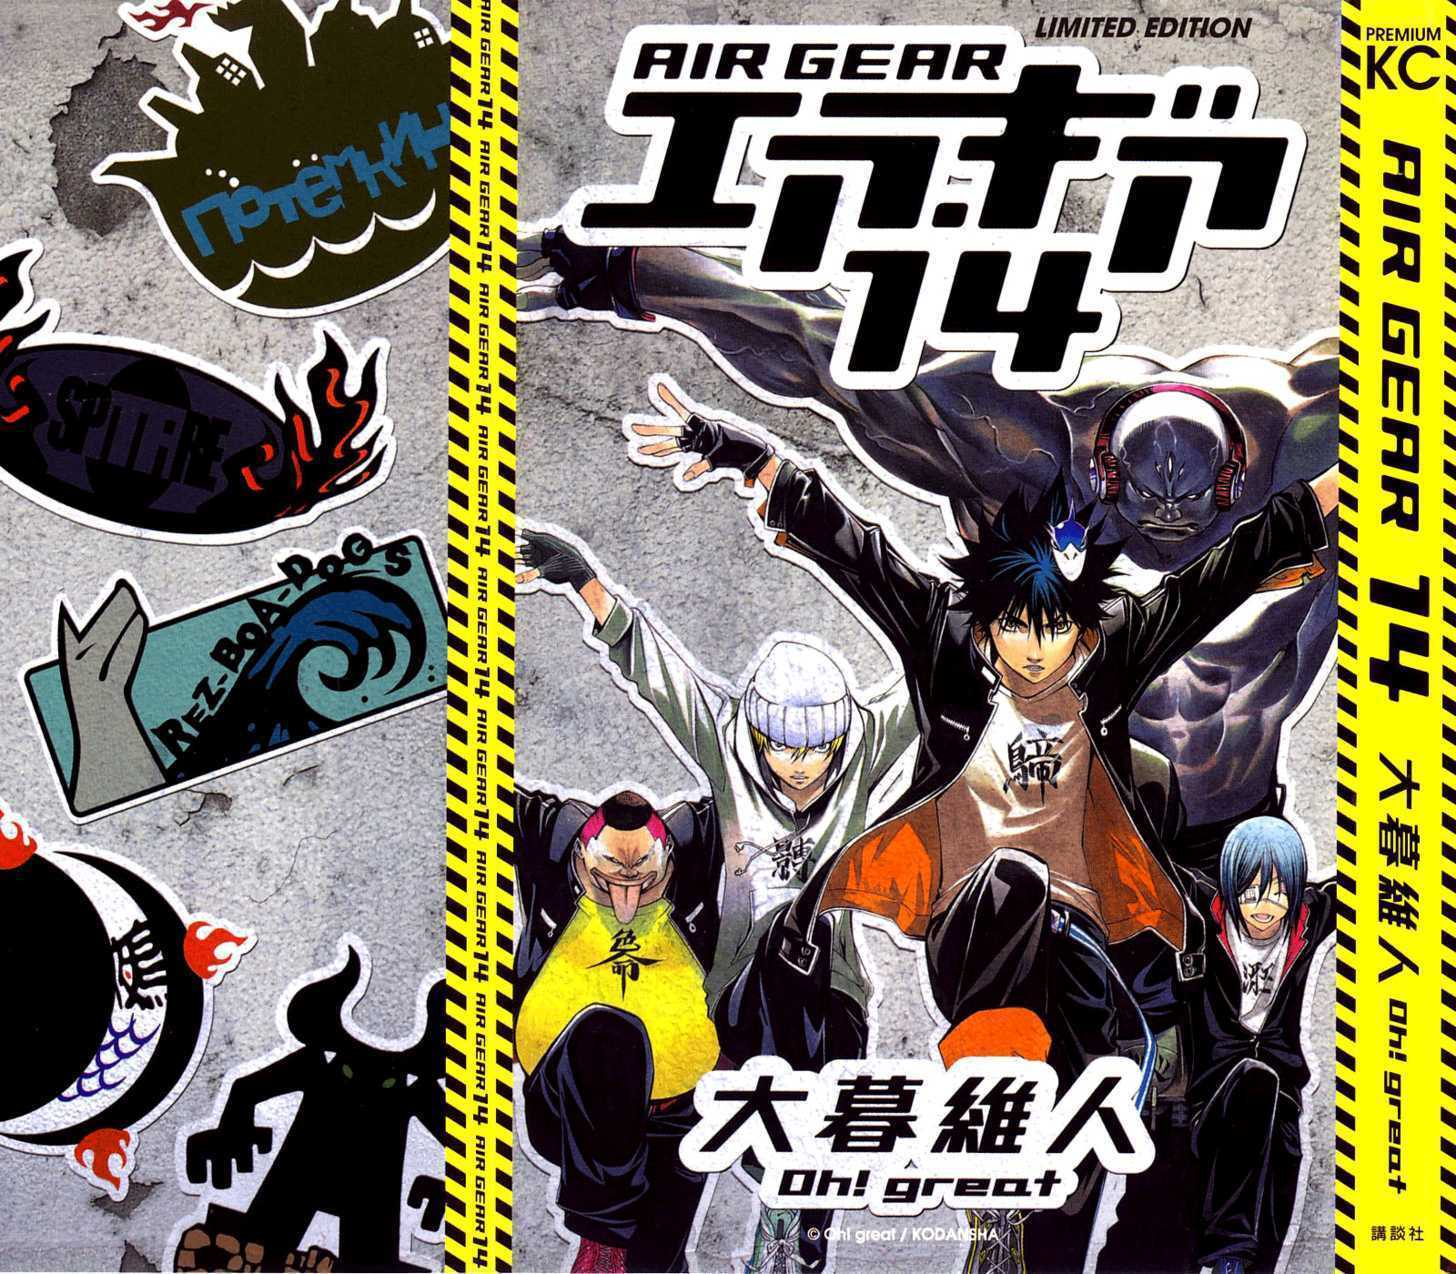 Air Gear 114 Page 1